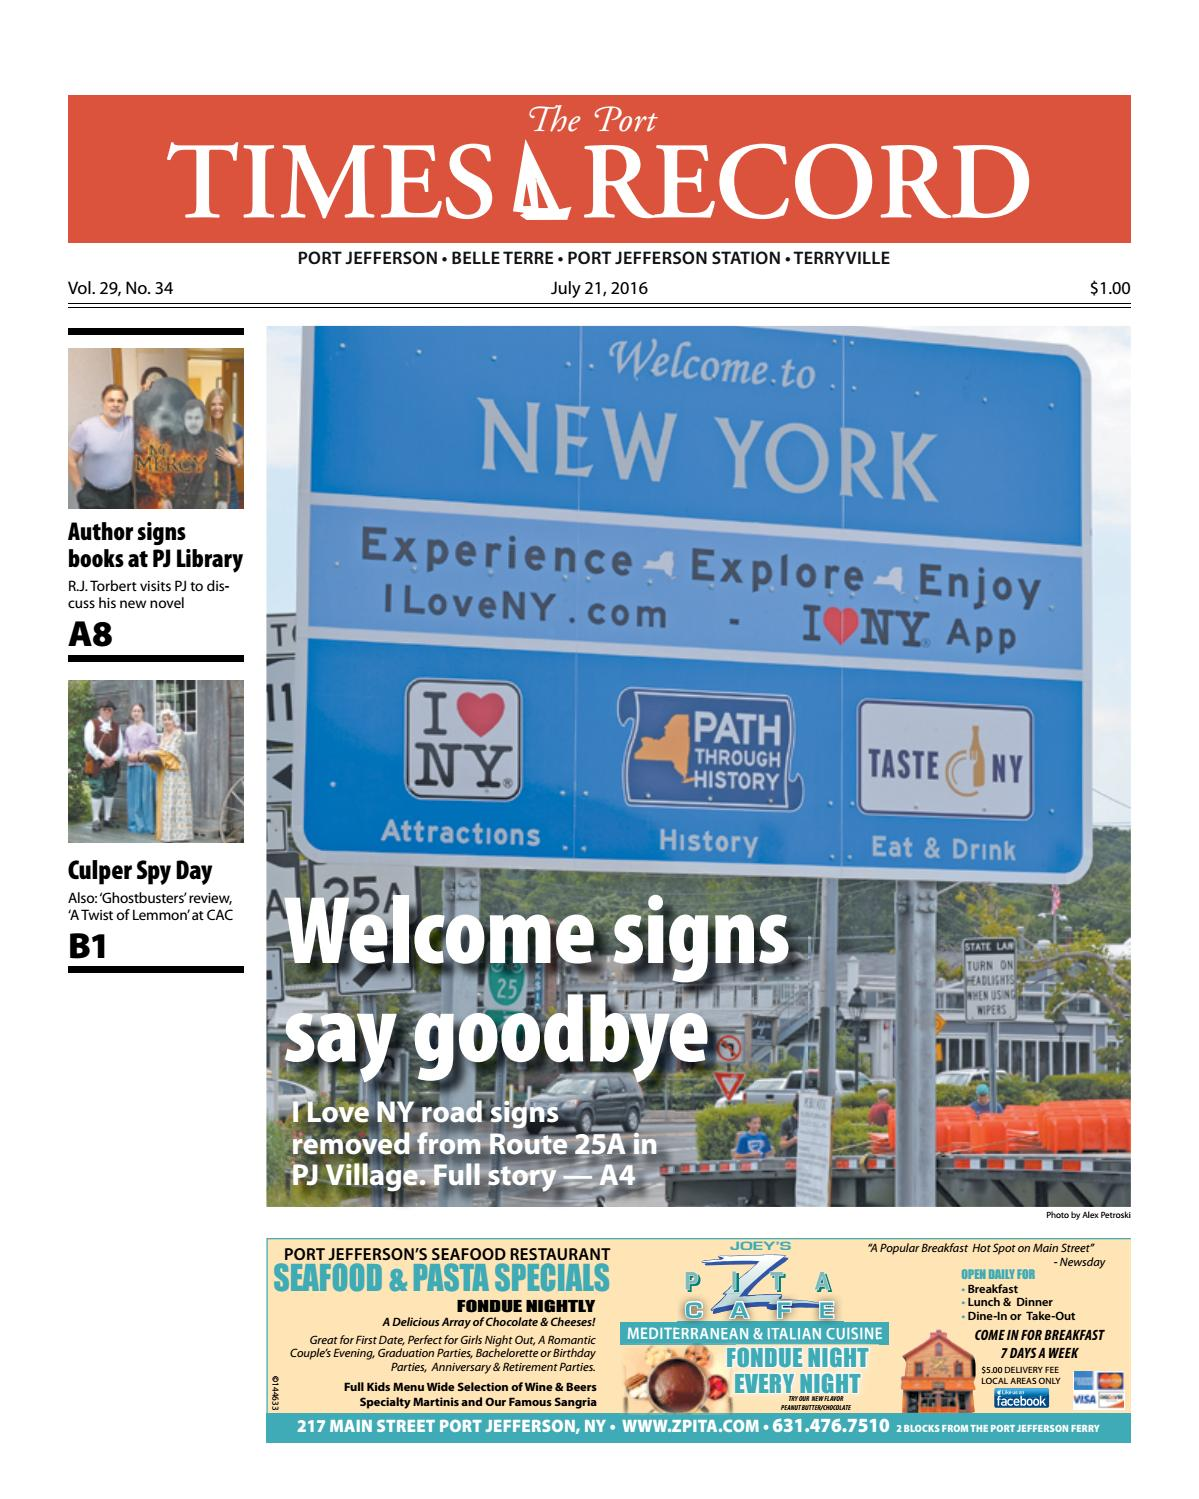 The Port Times Record - July 21, 2016 by TBR News Media - issuu